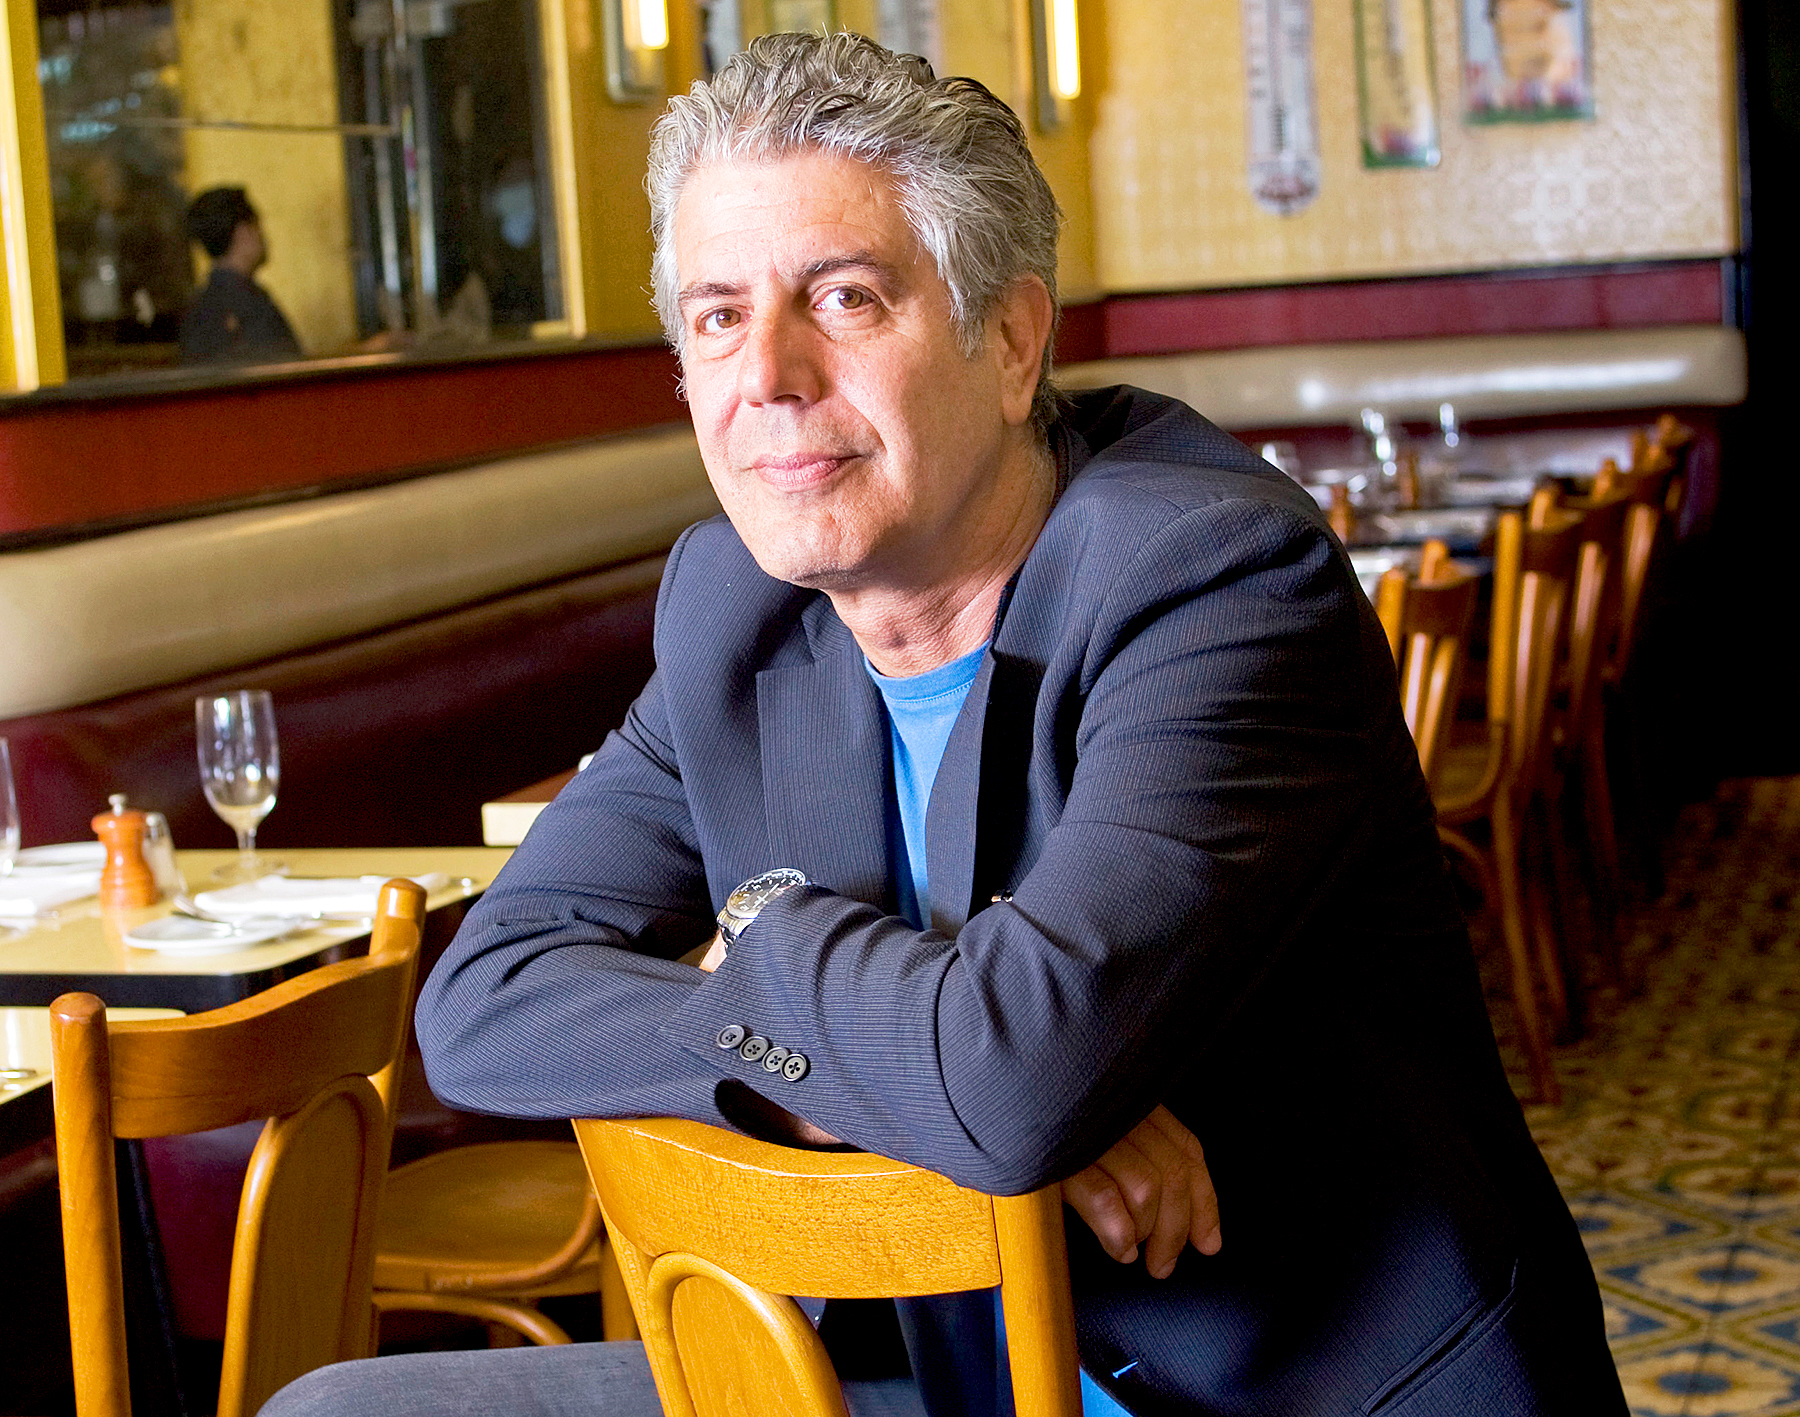 Anthony Bourdain Estate Valued at $1.2 Million